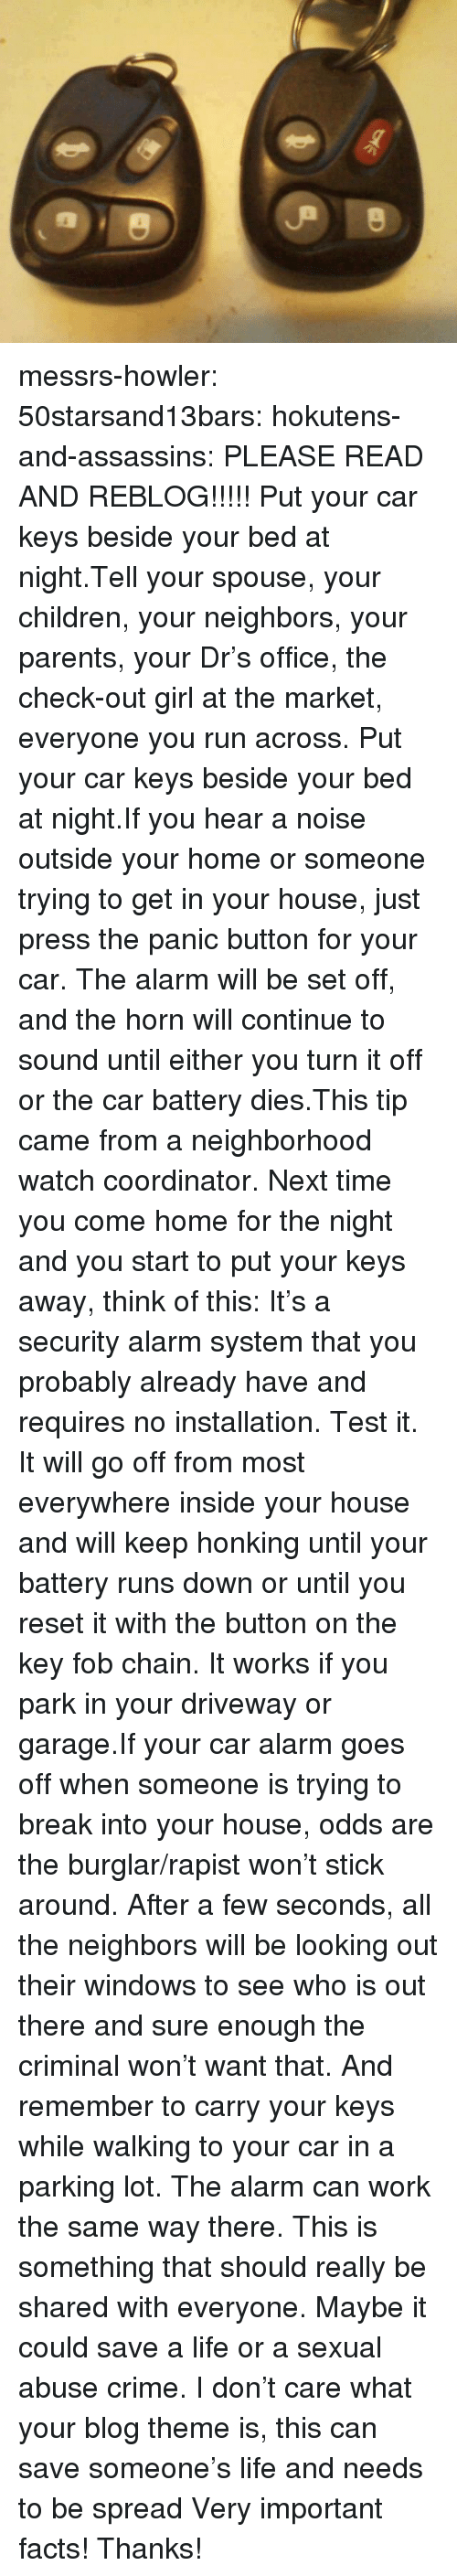 fob: messrs-howler:  50starsand13bars:  hokutens-and-assassins:  PLEASE READ AND REBLOG!!!!! Put your car keys beside your bed at night.Tell your spouse, your children, your neighbors, your parents, your Dr's office, the check-out girl at the market, everyone you run across. Put your car keys beside your bed at night.If you hear a noise outside your home or someone trying to get in your house, just press the panic button for your car. The alarm will be set off, and the horn will continue to sound until either you turn it off or the car battery dies.This tip came from a neighborhood watch coordinator. Next time you come home for the night and you start to put your keys away, think of this: It's a security alarm system that you probably already have and requires no installation. Test it. It will go off from most everywhere inside your house and will keep honking until your battery runs down or until you reset it with the button on the key fob chain. It works if you park in your driveway or garage.If your car alarm goes off when someone is trying to break into your house, odds are the burglar/rapist won't stick around. After a few seconds, all the neighbors will be looking out their windows to see who is out there and sure enough the criminal won't want that. And remember to carry your keys while walking to your car in a parking lot. The alarm can work the same way there. This is something that should really be shared with everyone. Maybe it could save a life or a sexual abuse crime.  I don't care what your blog theme is, this can save someone's life and needs to be spread   Very important facts! Thanks!